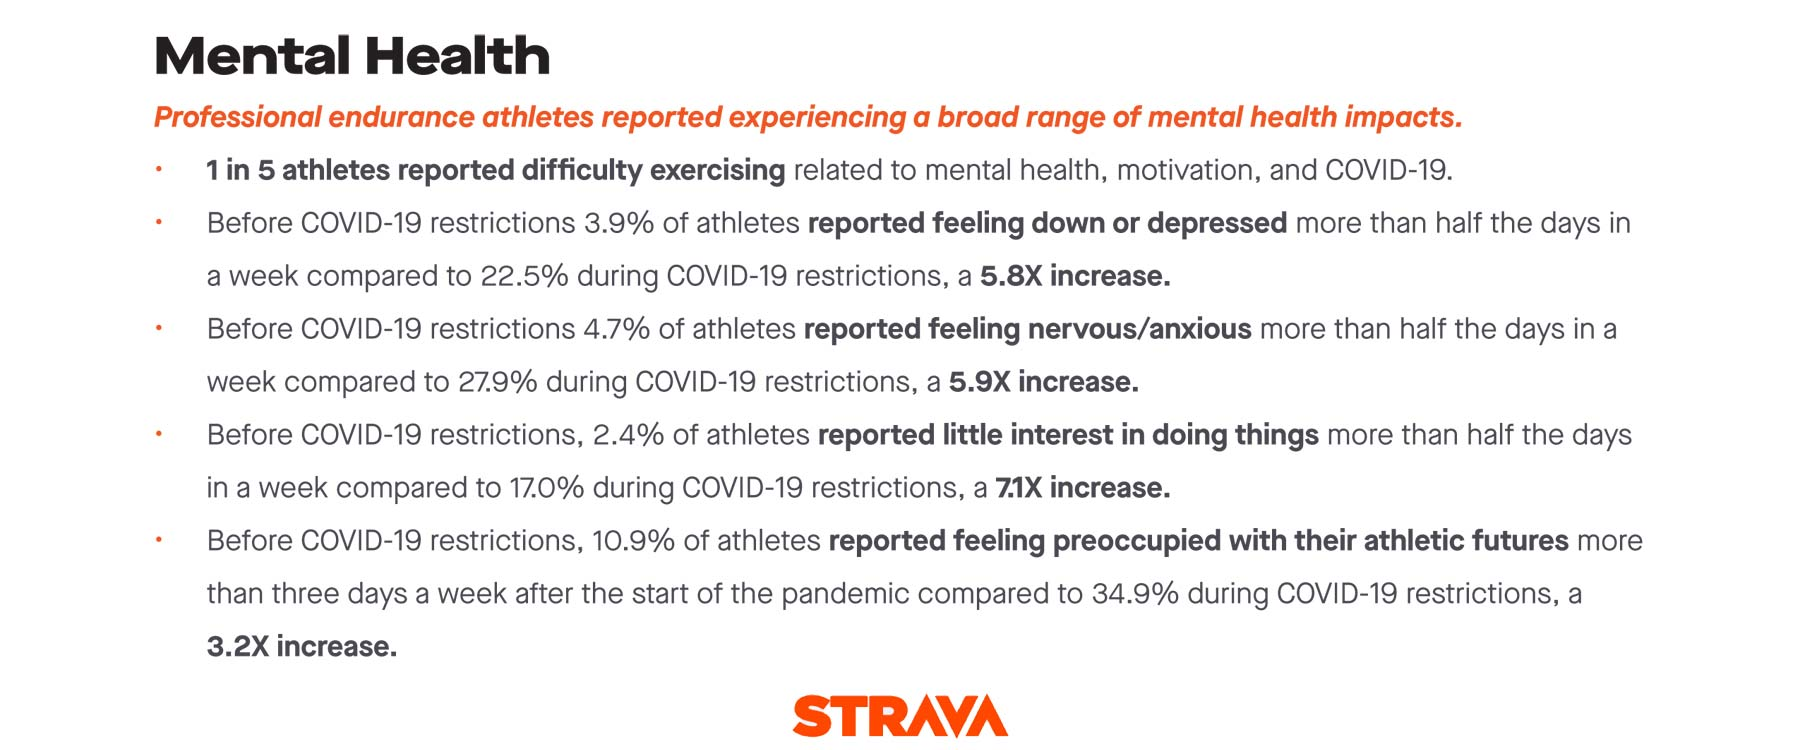 Strava + Stanford professional athlete COVID-19 impacts study, Mental Health impacts